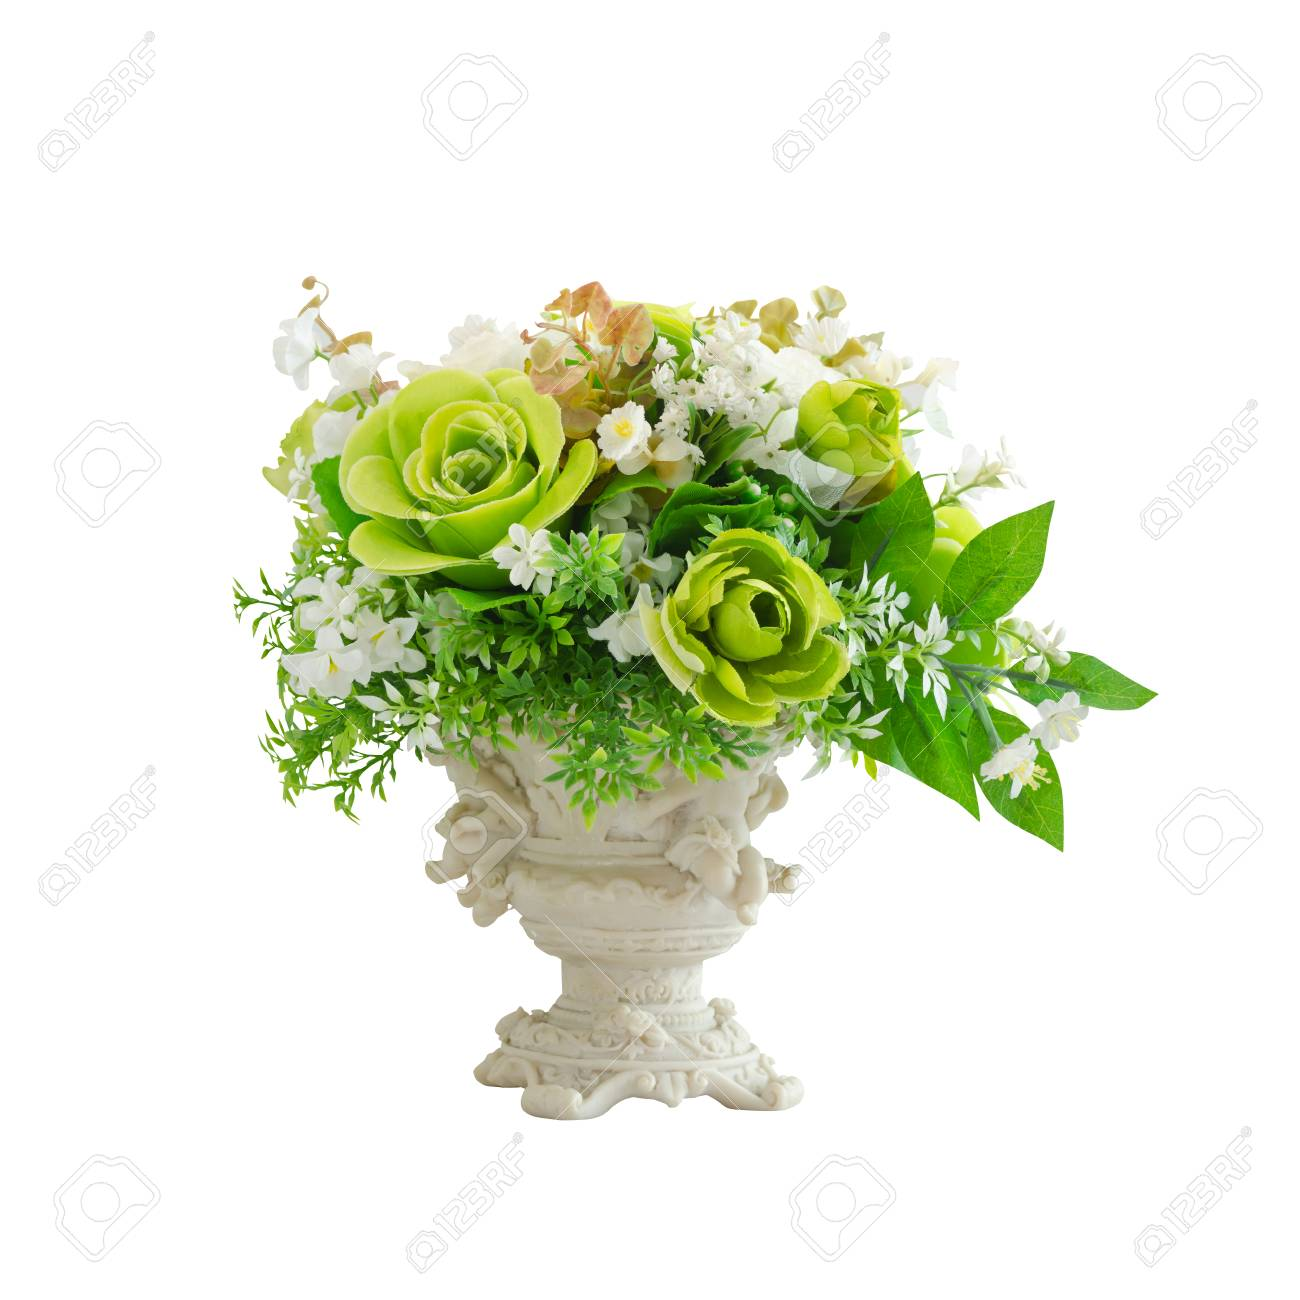 Beautiful white and green artificial flowers in white vase isolated beautiful white and green artificial flowers in white vase isolated on white background with working path mightylinksfo